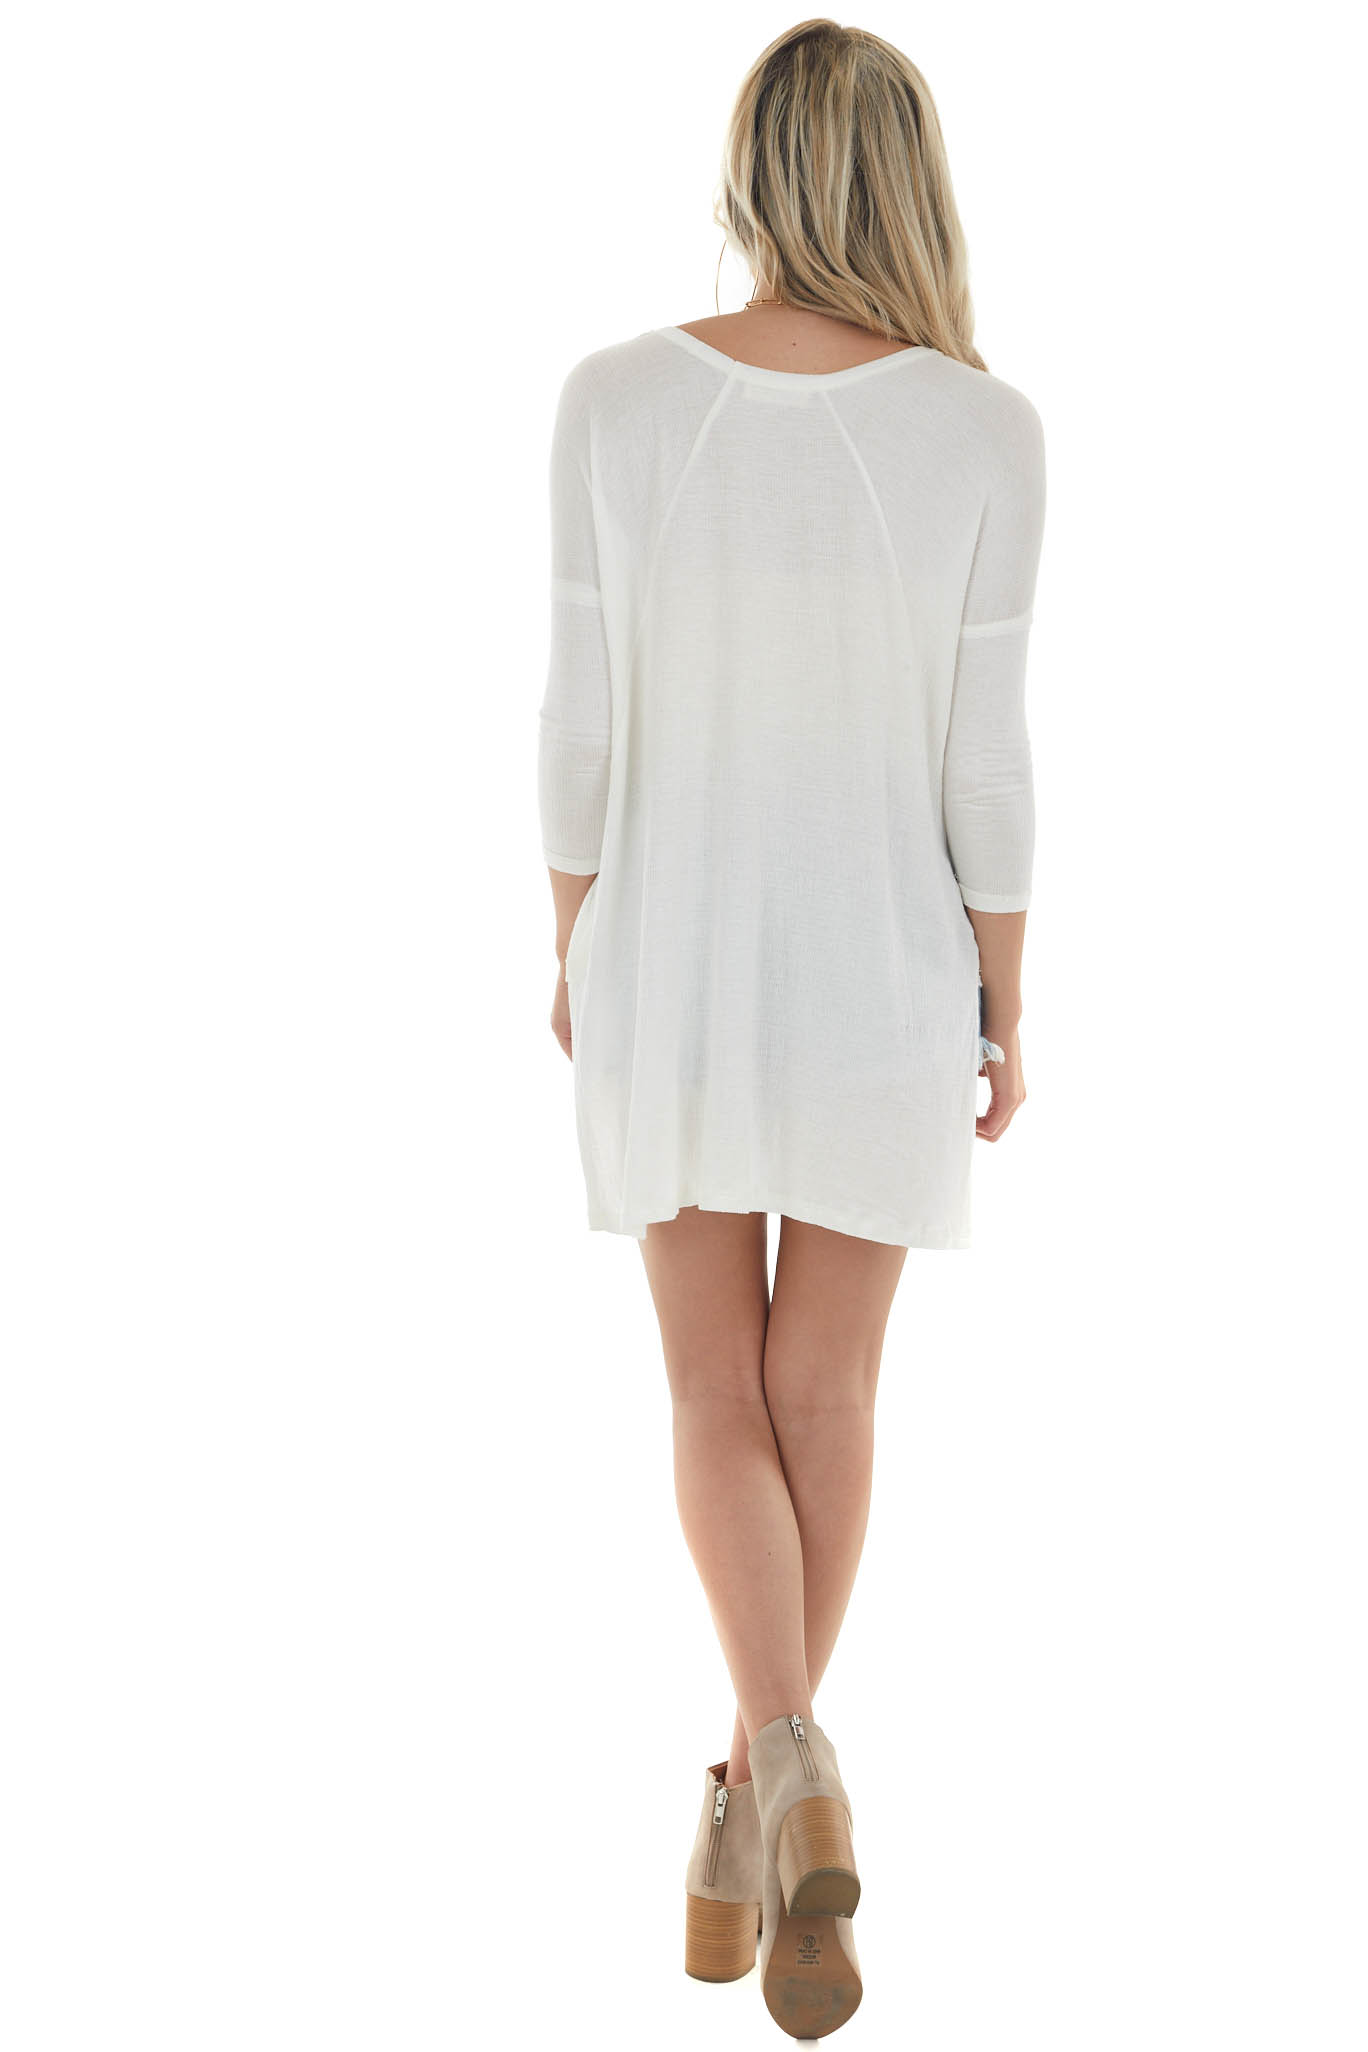 Off White Lightweight 3/4 Sleeve Top with High Low HemOff White Lightweight 3/4 Sleeve Top with High Low Hem